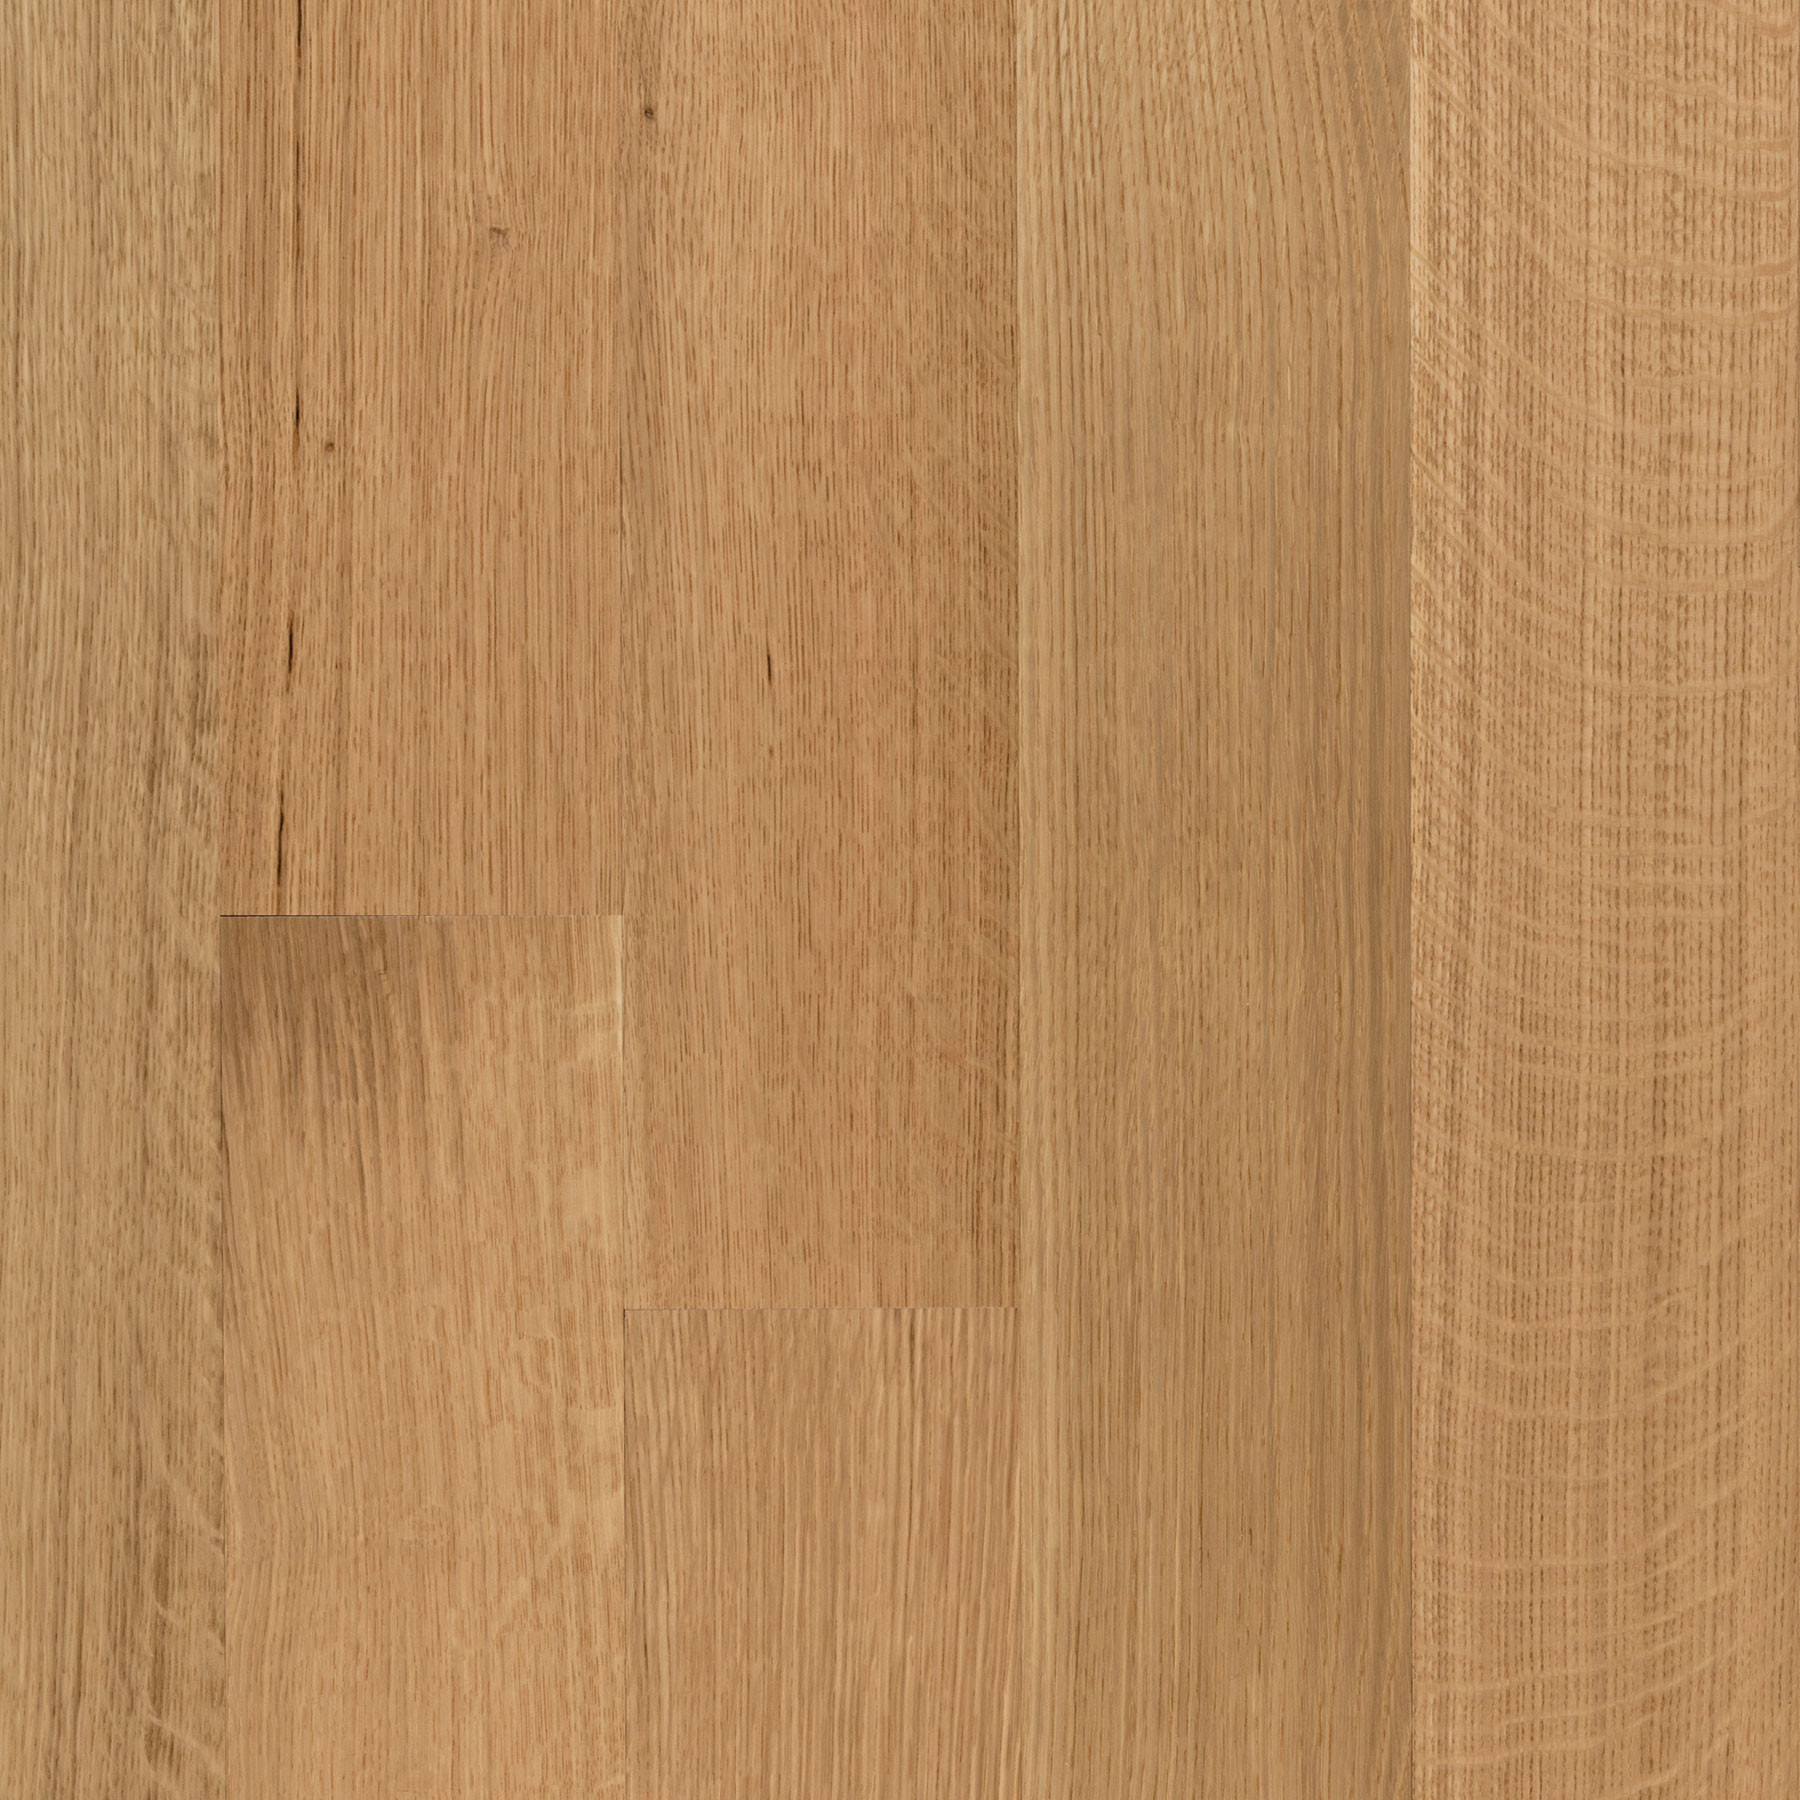 3 1 2 hardwood flooring of american quartered white oak 5″ etx surfaces inside american quartered white oak 5″